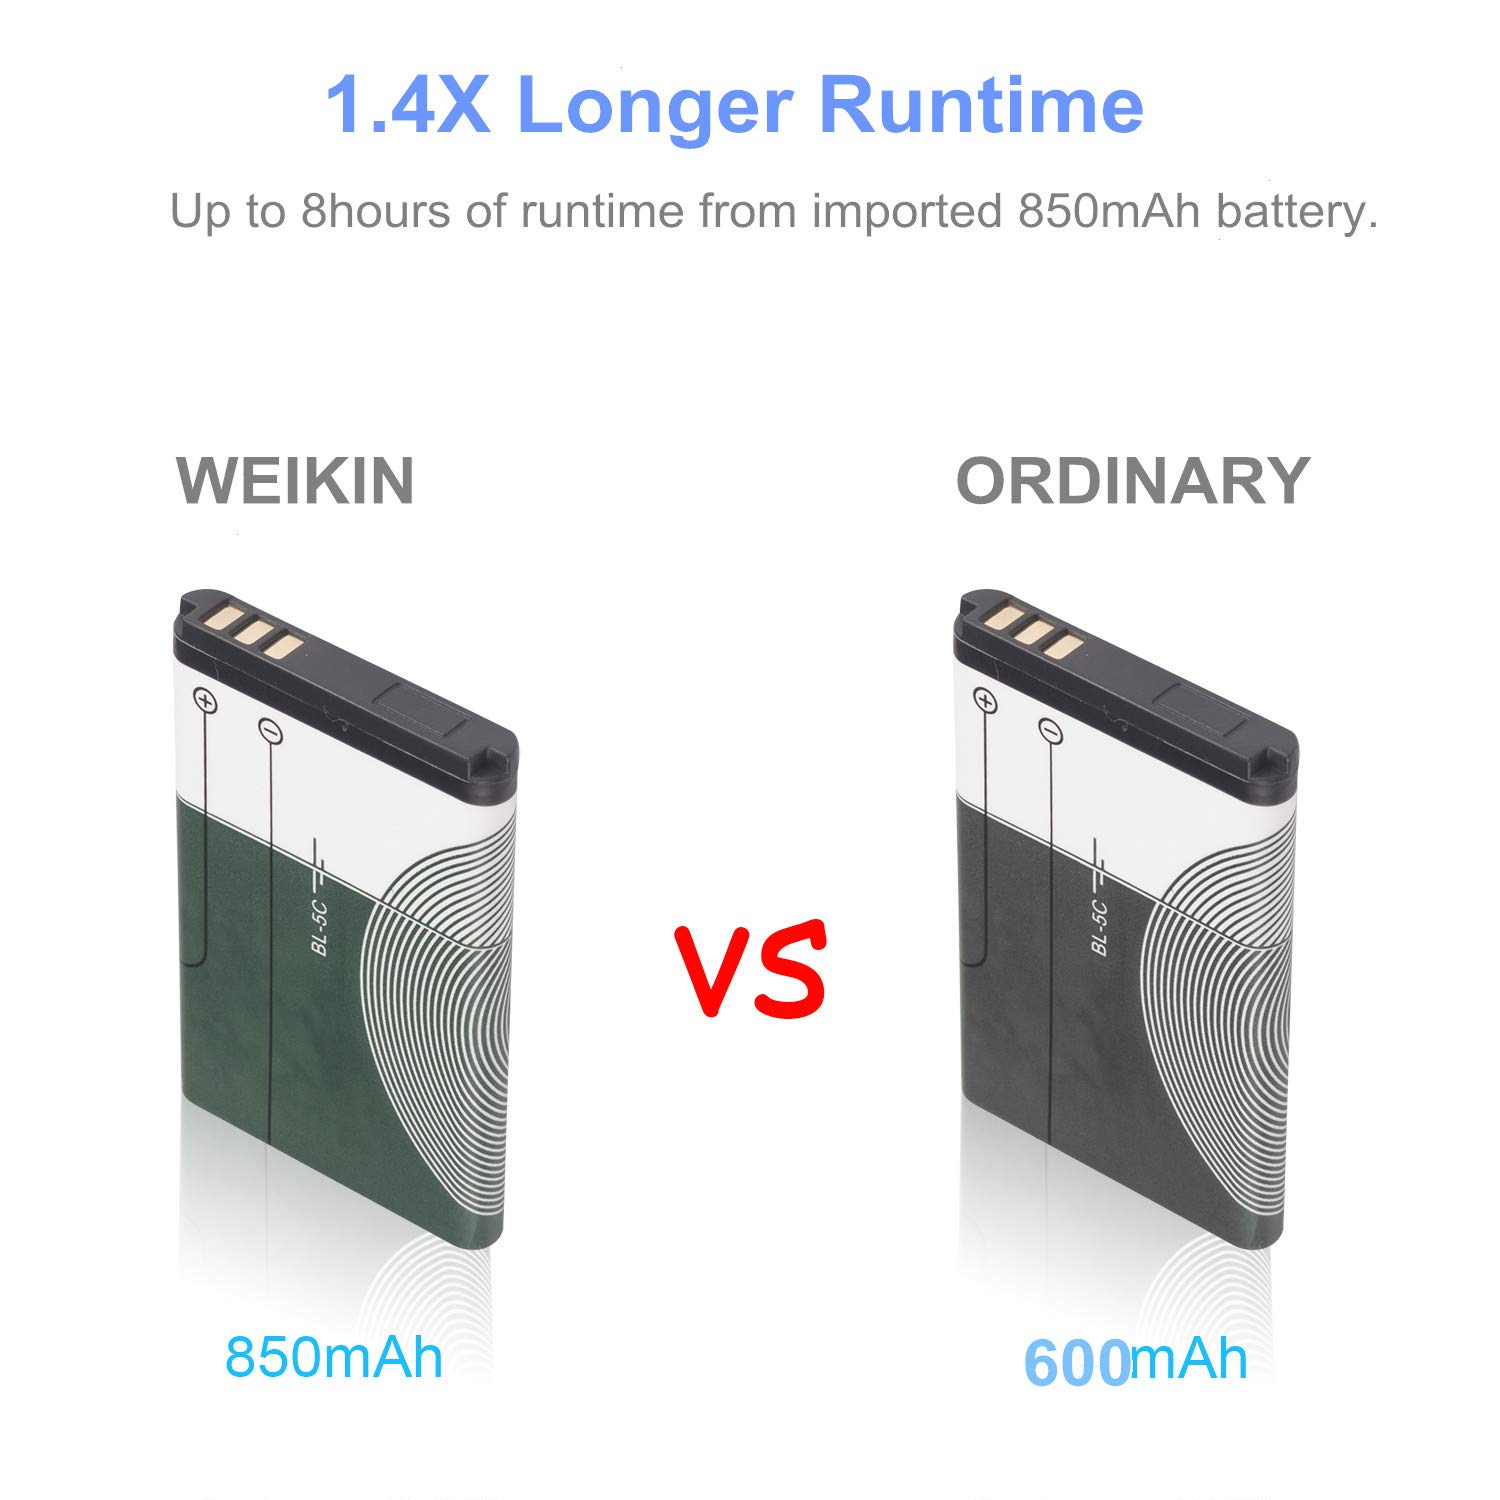 weikin Handheld Game Console, 168 Classic Games 3 Inch LCD Screen Portable Retro Video Game Console Support for Connecting TV and Two Players, Good Gifts for Kids and Adult. by weikin (Image #3)